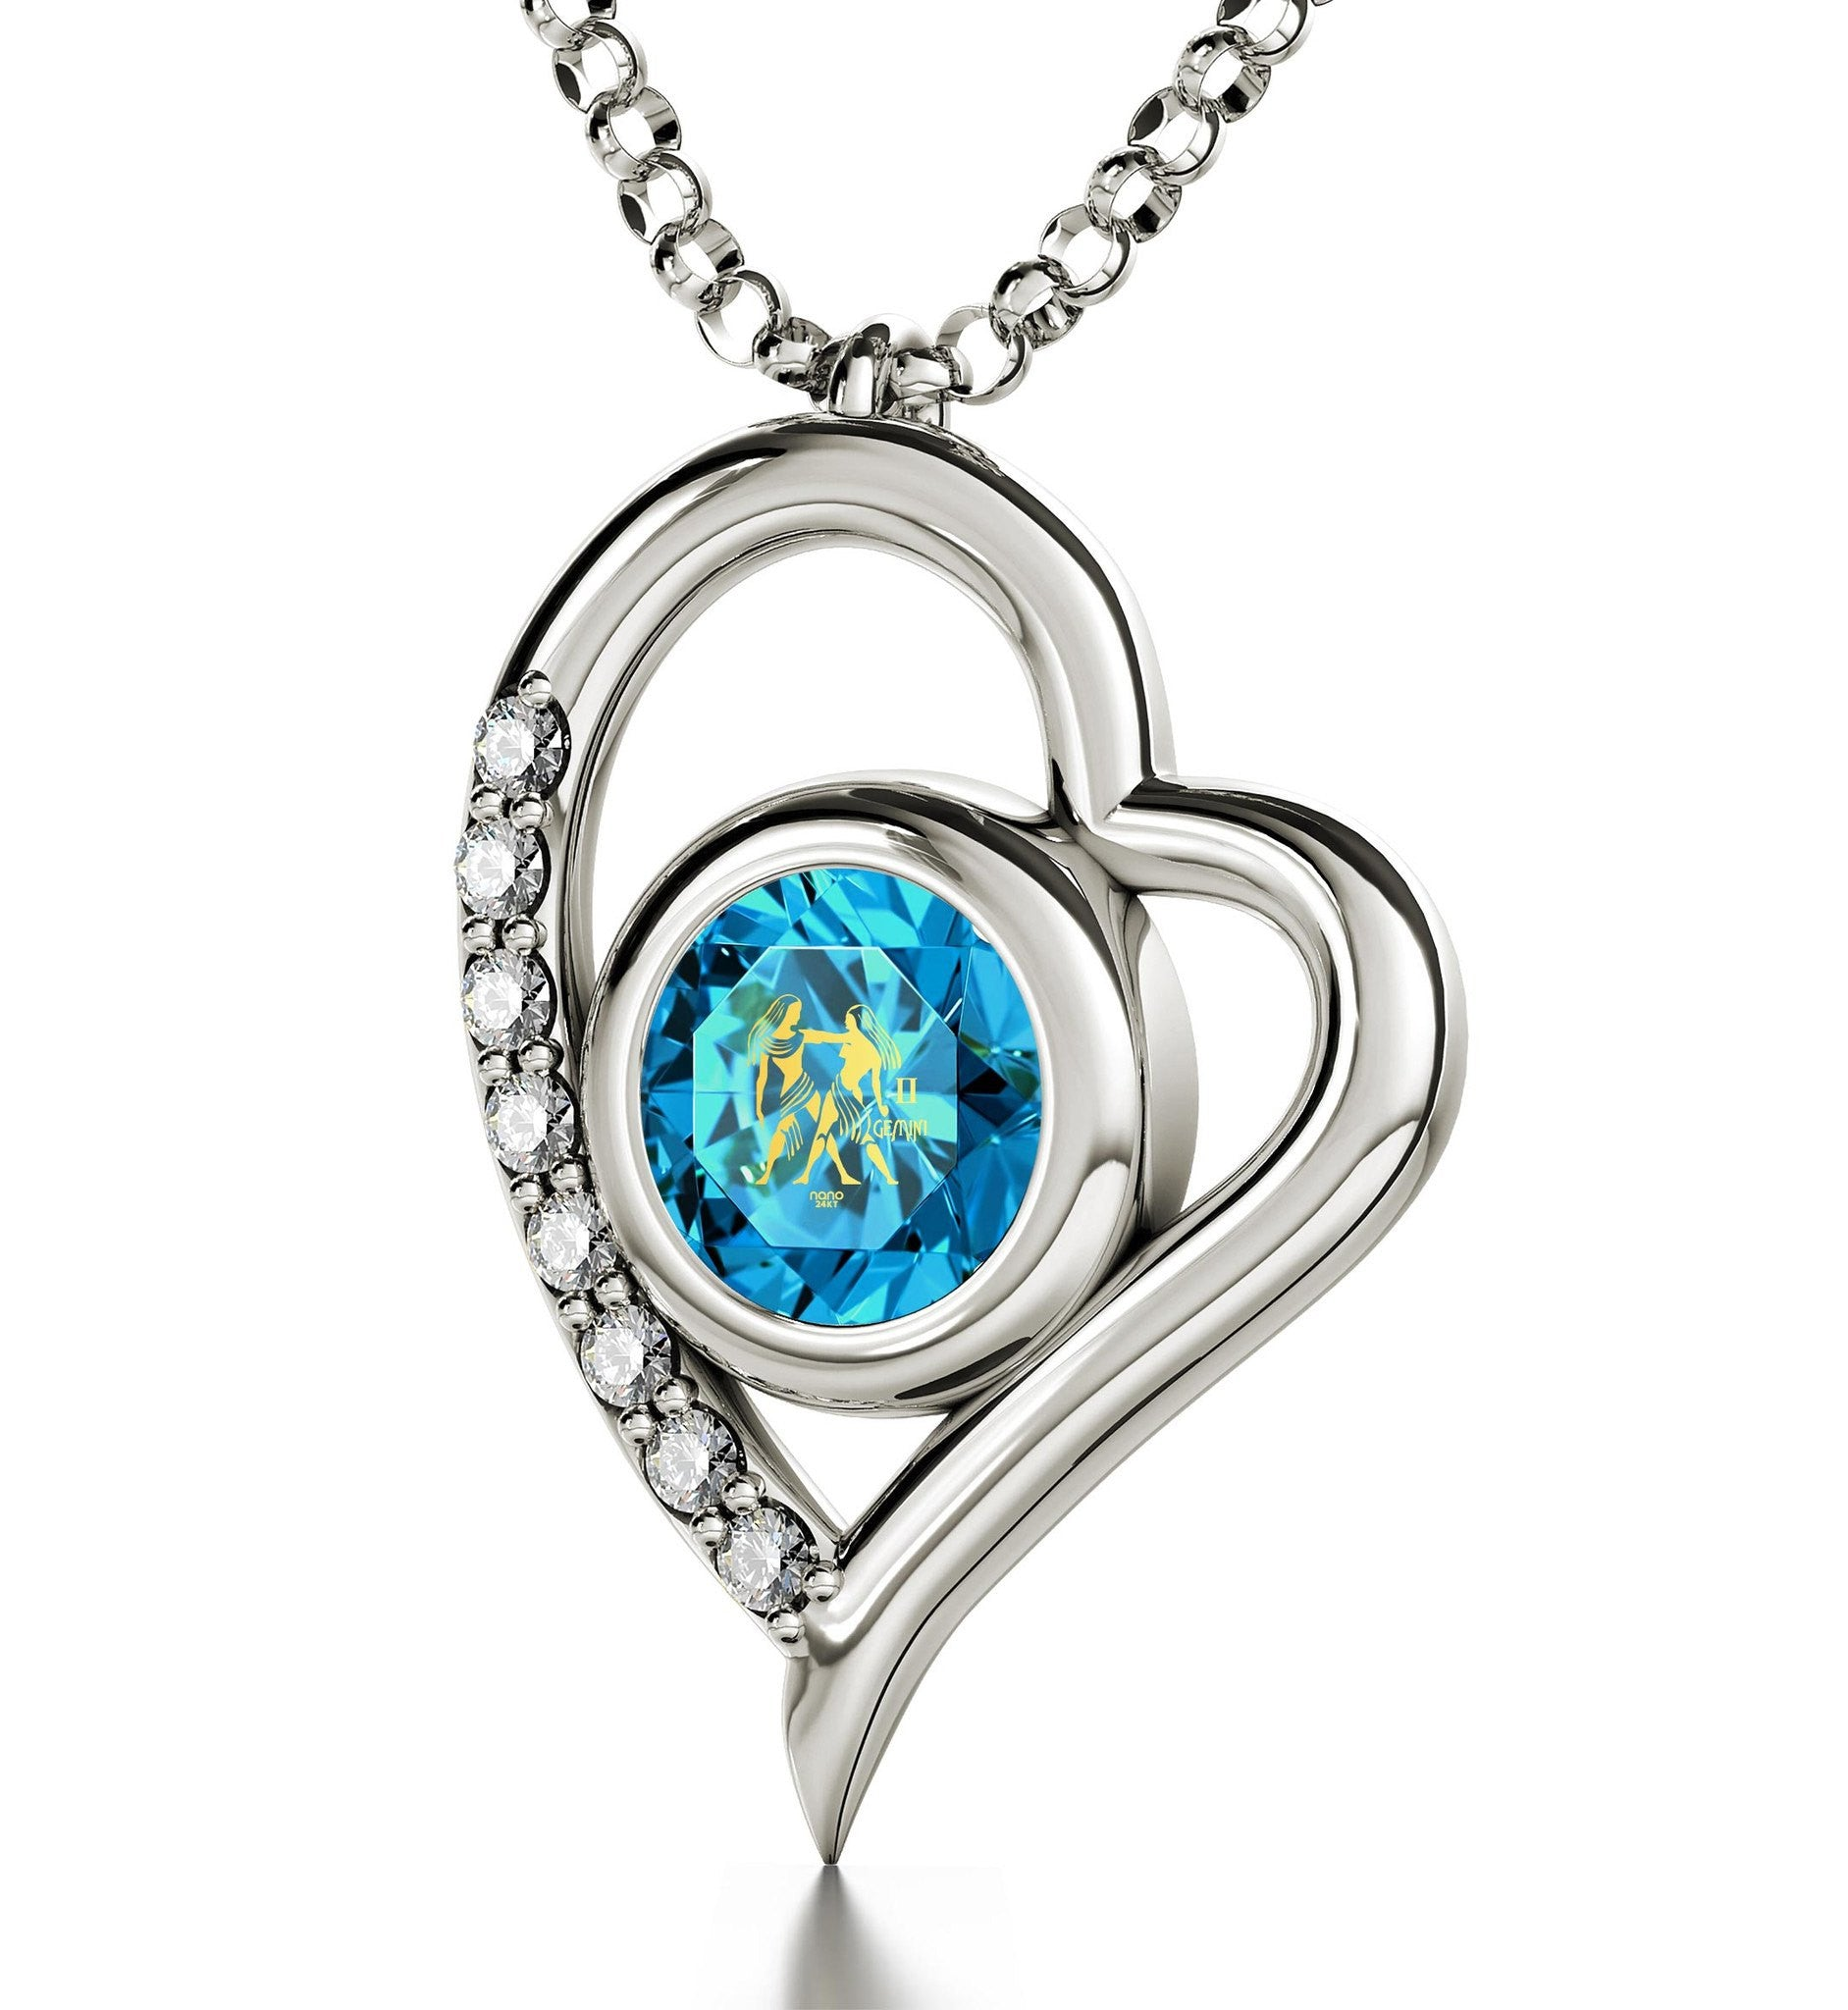 """Gemini Pendant With 24k Imprint, Presents for Mom Christmas, Best Girlfriend Gifts, Aquamarine Jewelry"""